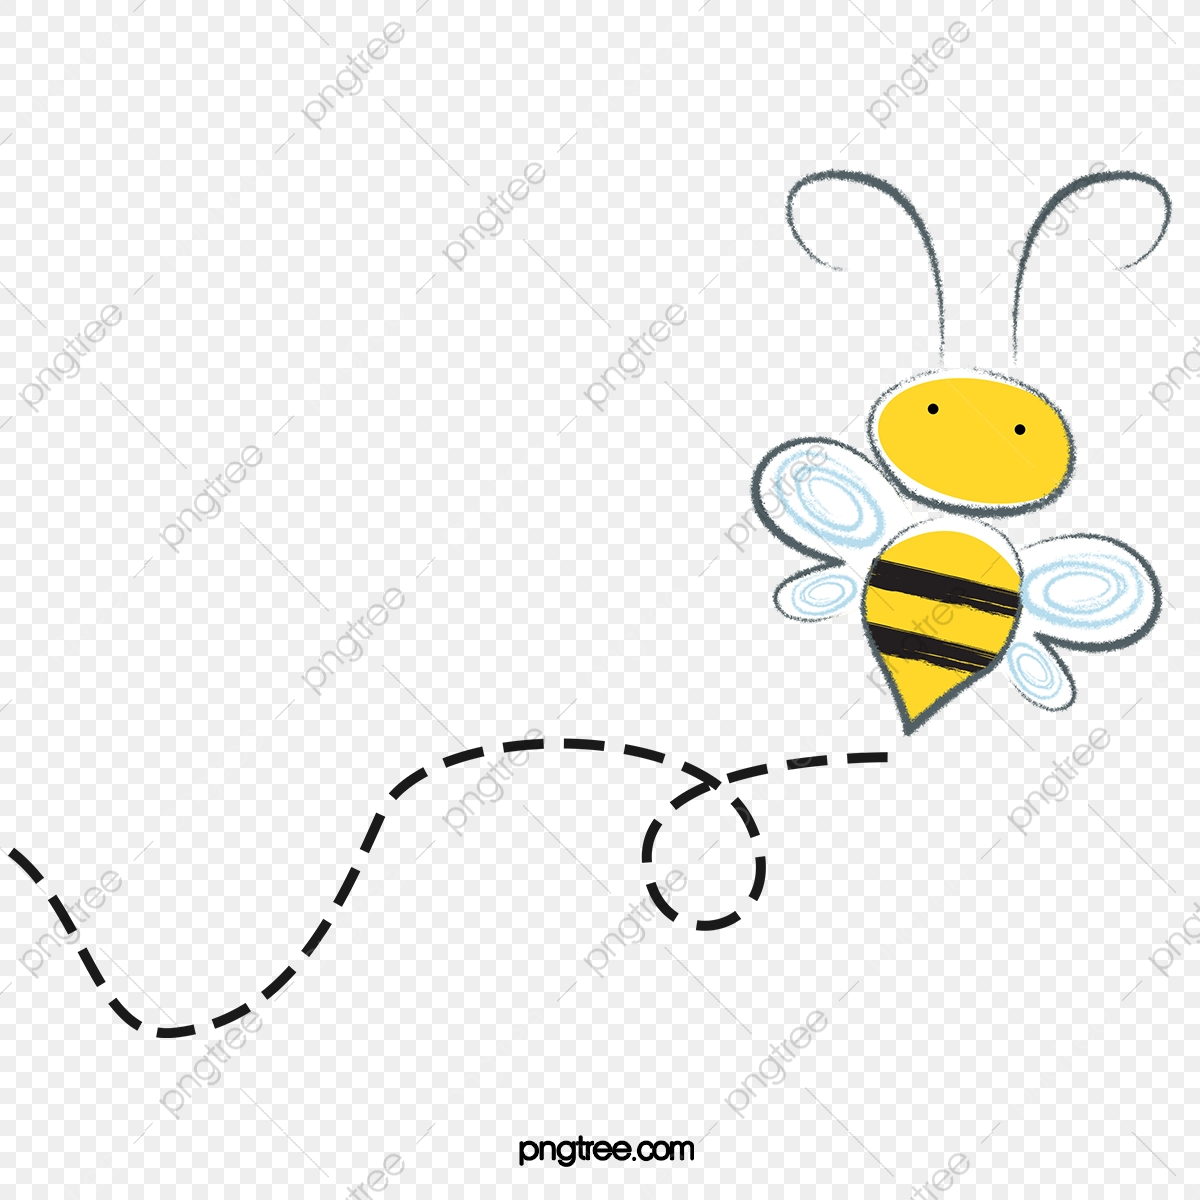 Flying Bee, Bee Clipart, Fly, Bee PNG Transparent Clipart Image and.